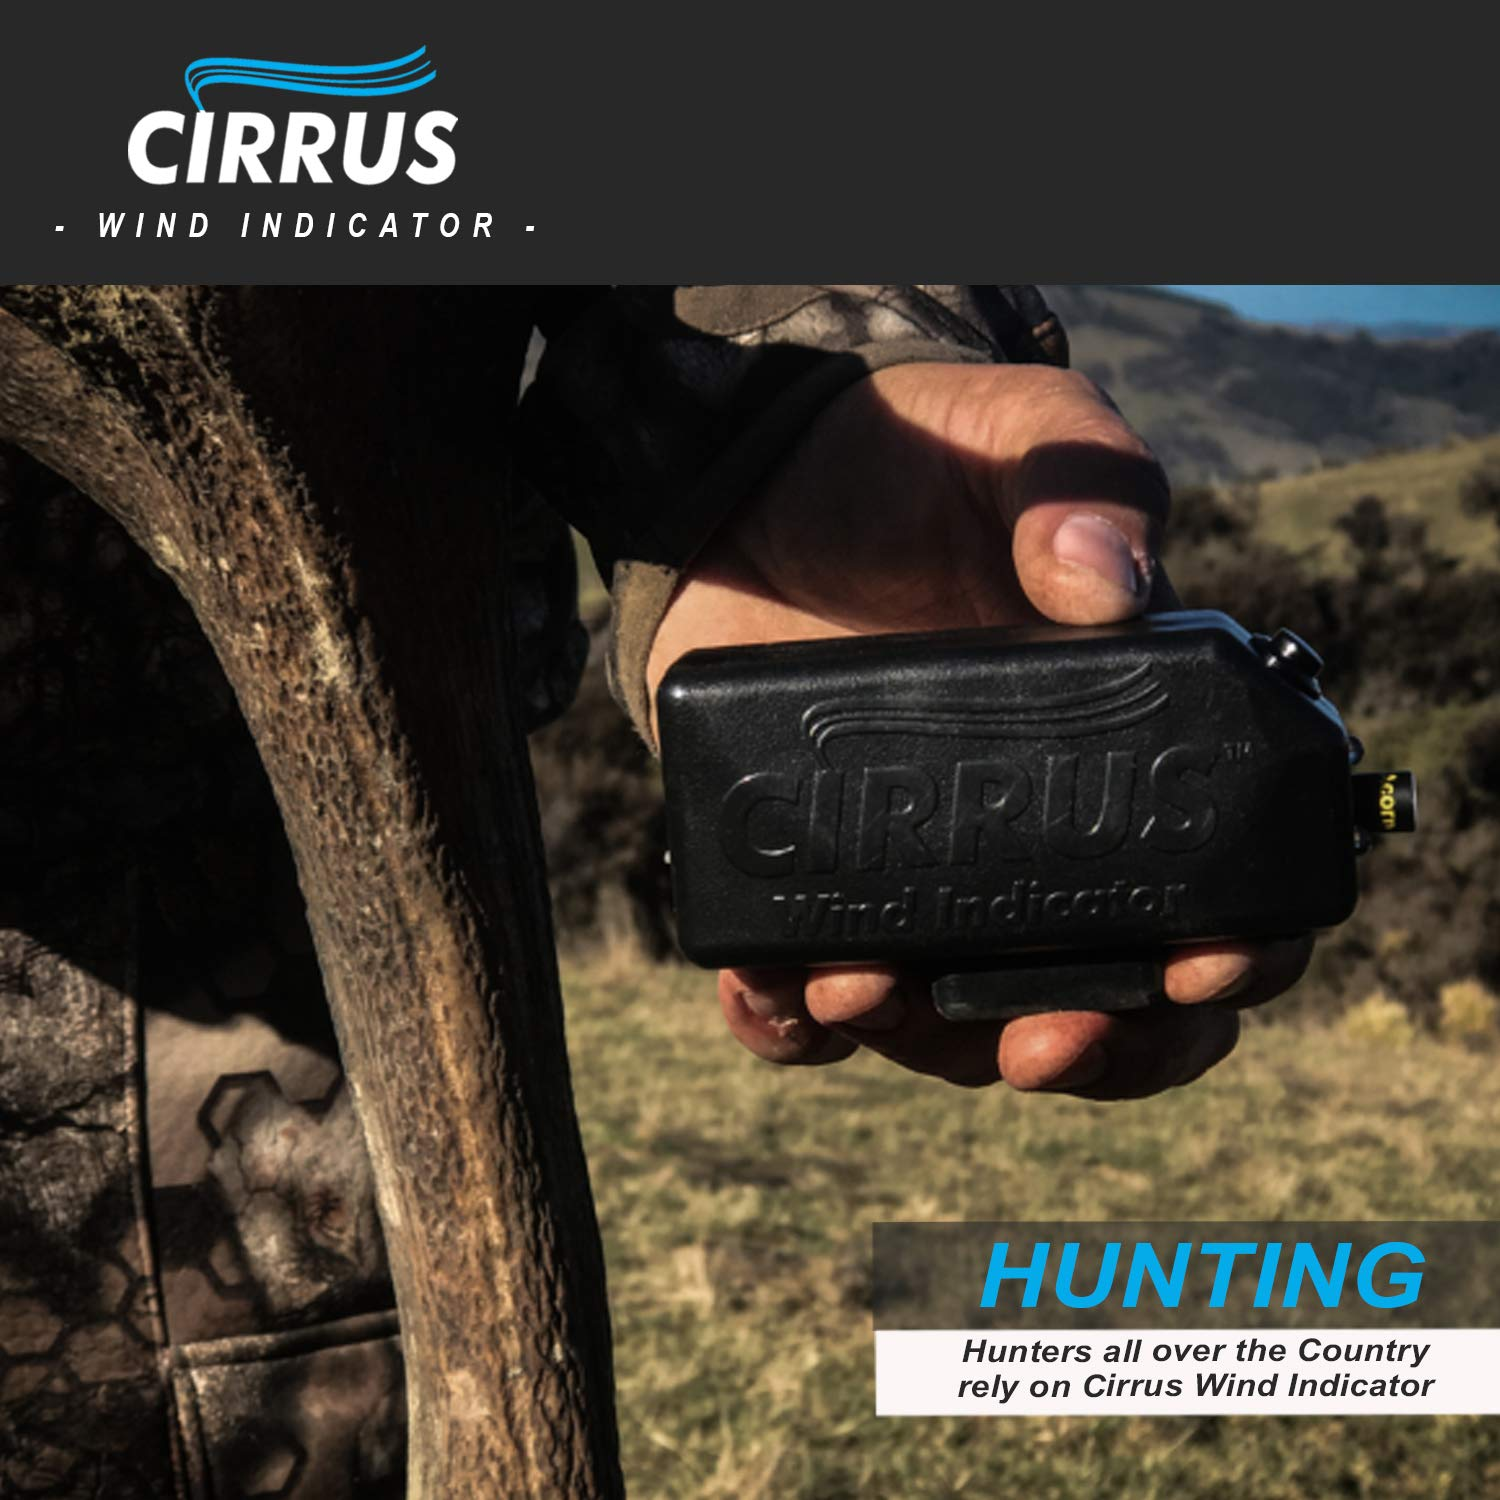 Cirrus Wind Indicator for Hunting - The Perfect Wind Checker Alternative to Messy Powder by Cirrus (Image #8)